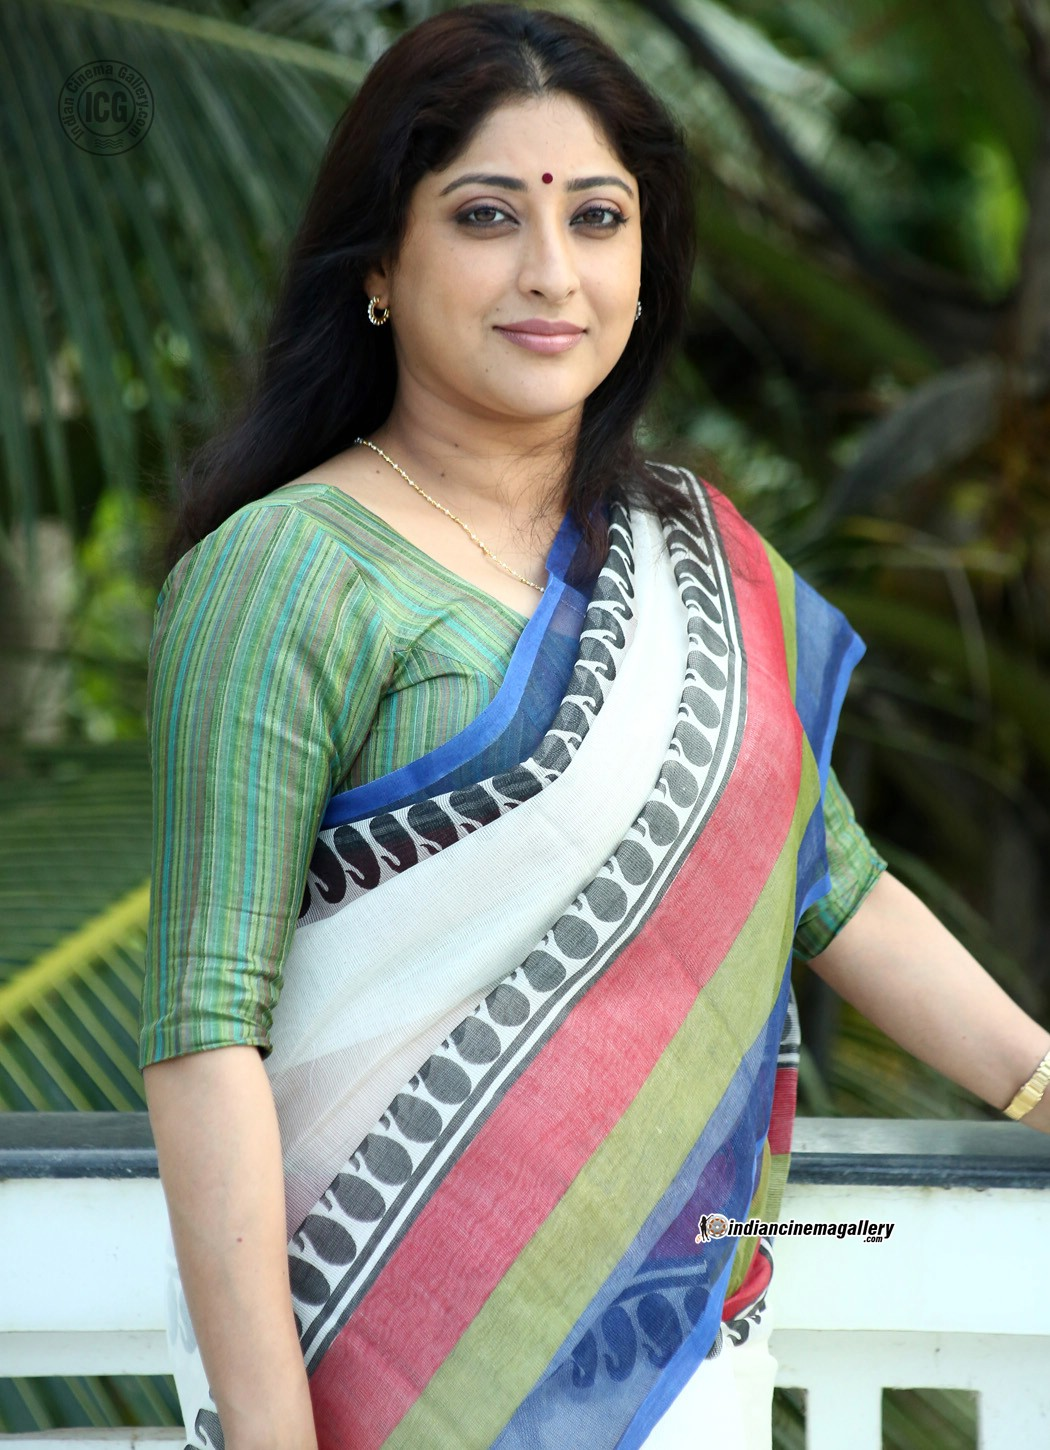 Searching For Love Quotes In Wallpapers Lakshmi Gopalaswamy Latest Hot Photos In Saree From Oru